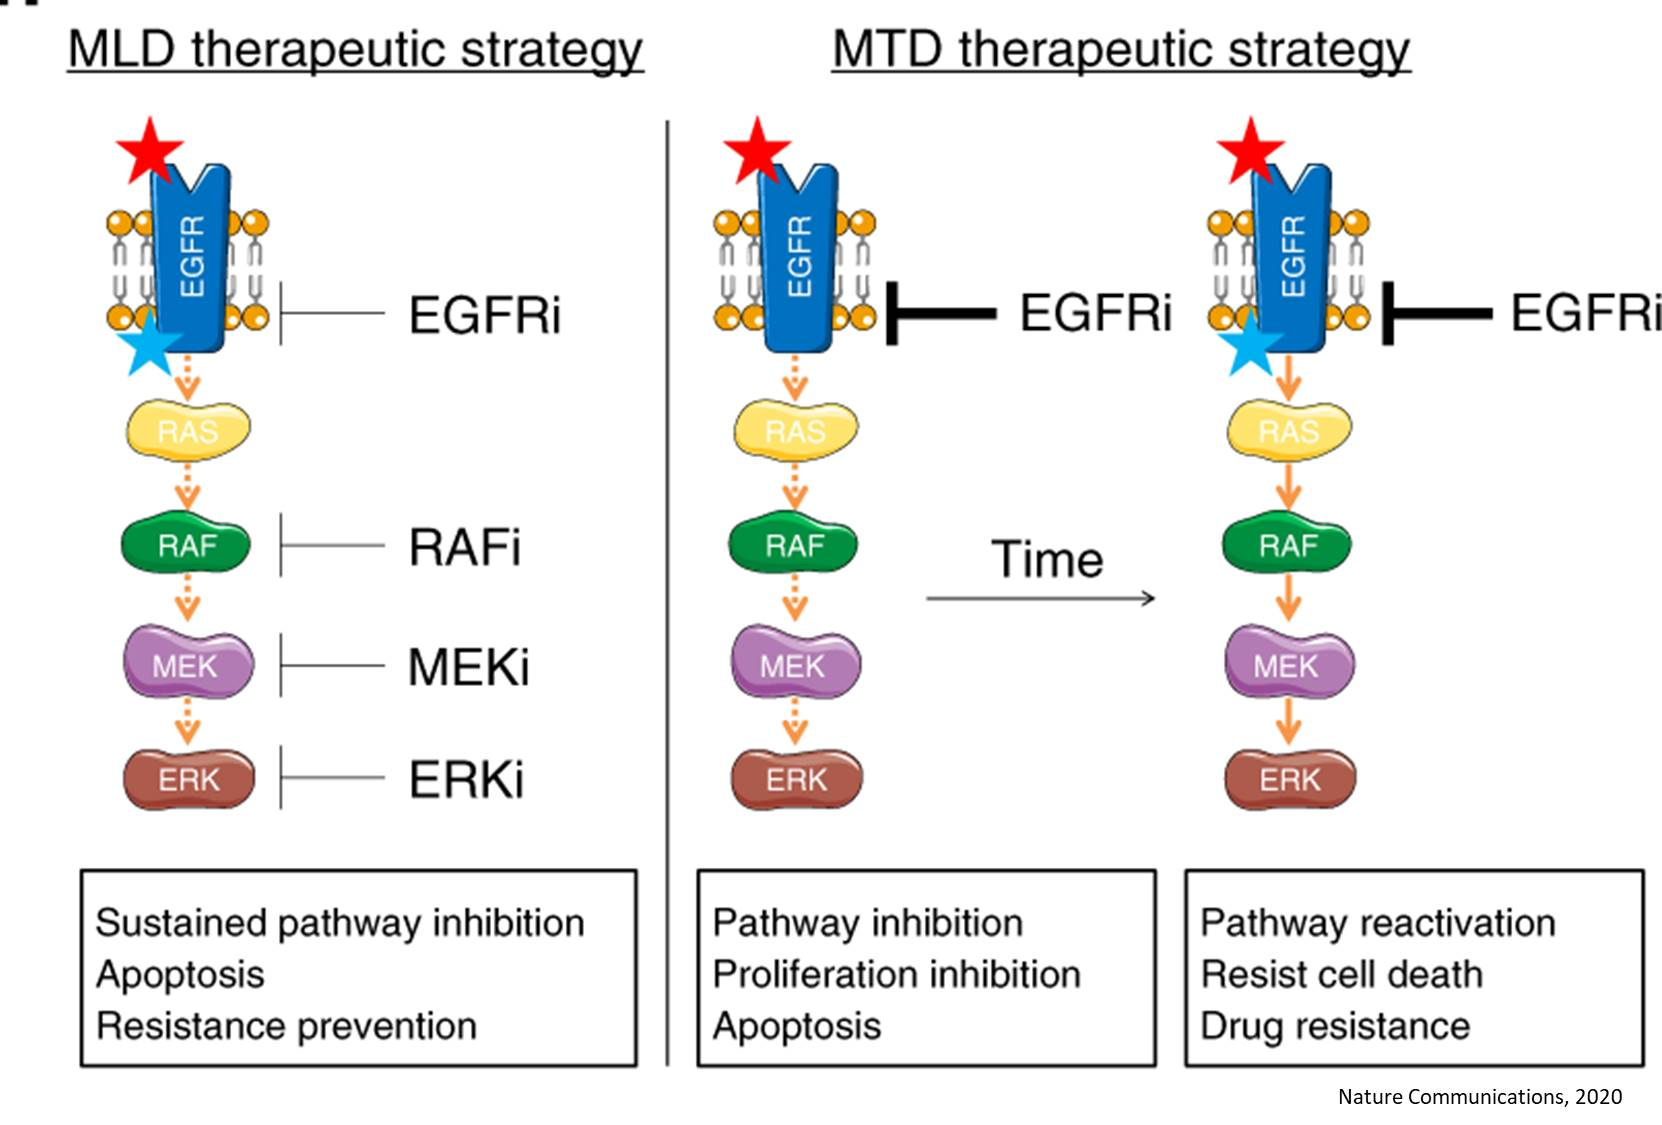 Treating EGFR inhibitor resistant lung tumors with low does of 4 drugs